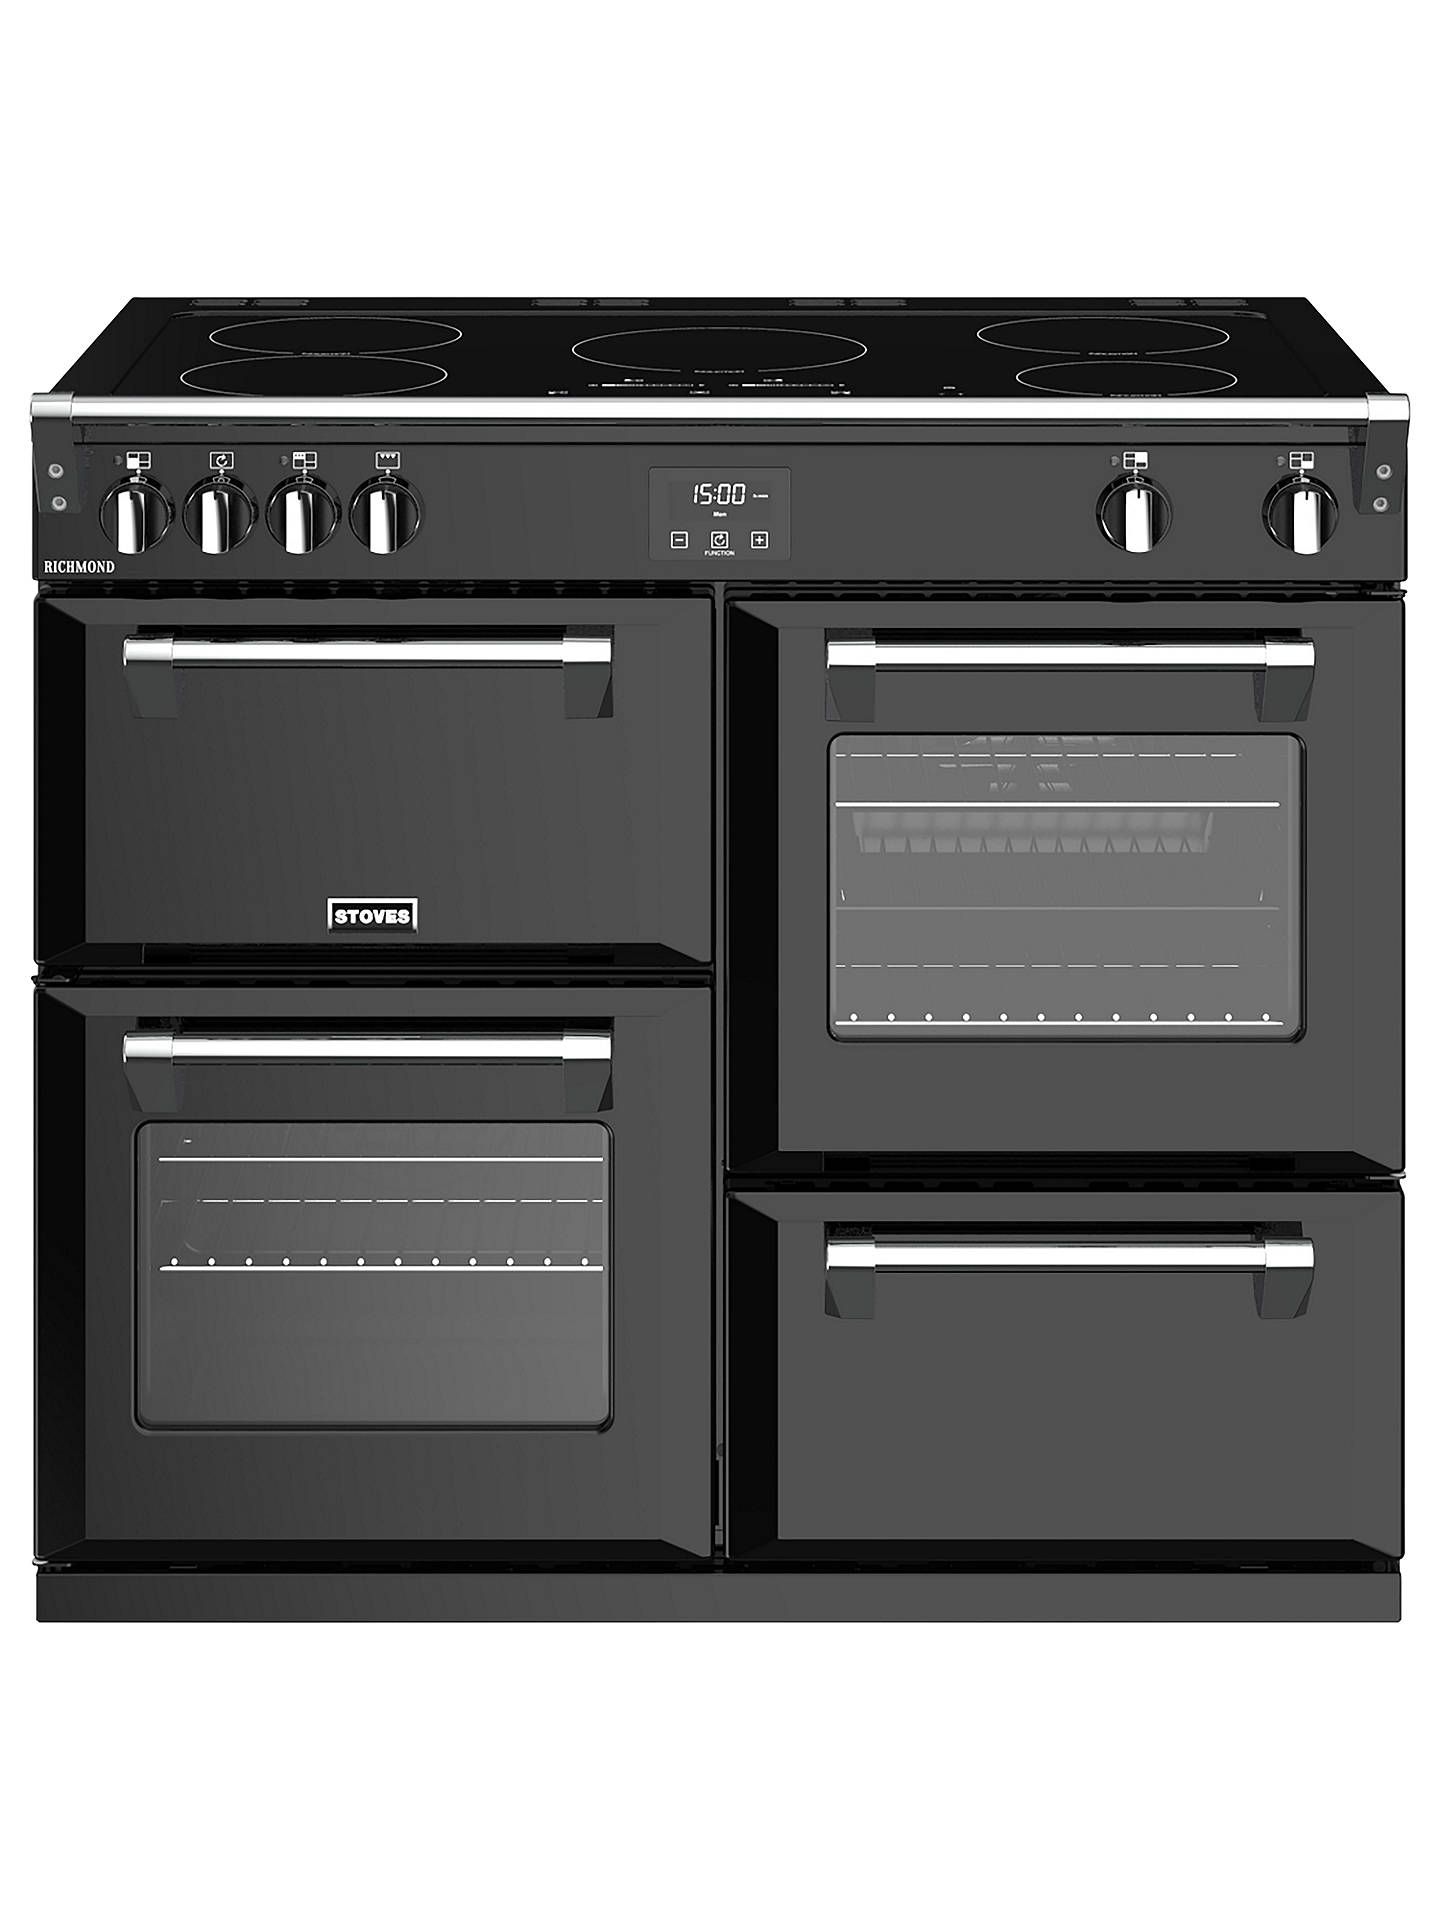 BuyStoves Richmond S1000Ei Induction Range Cooker, Black Online at johnlewis.com